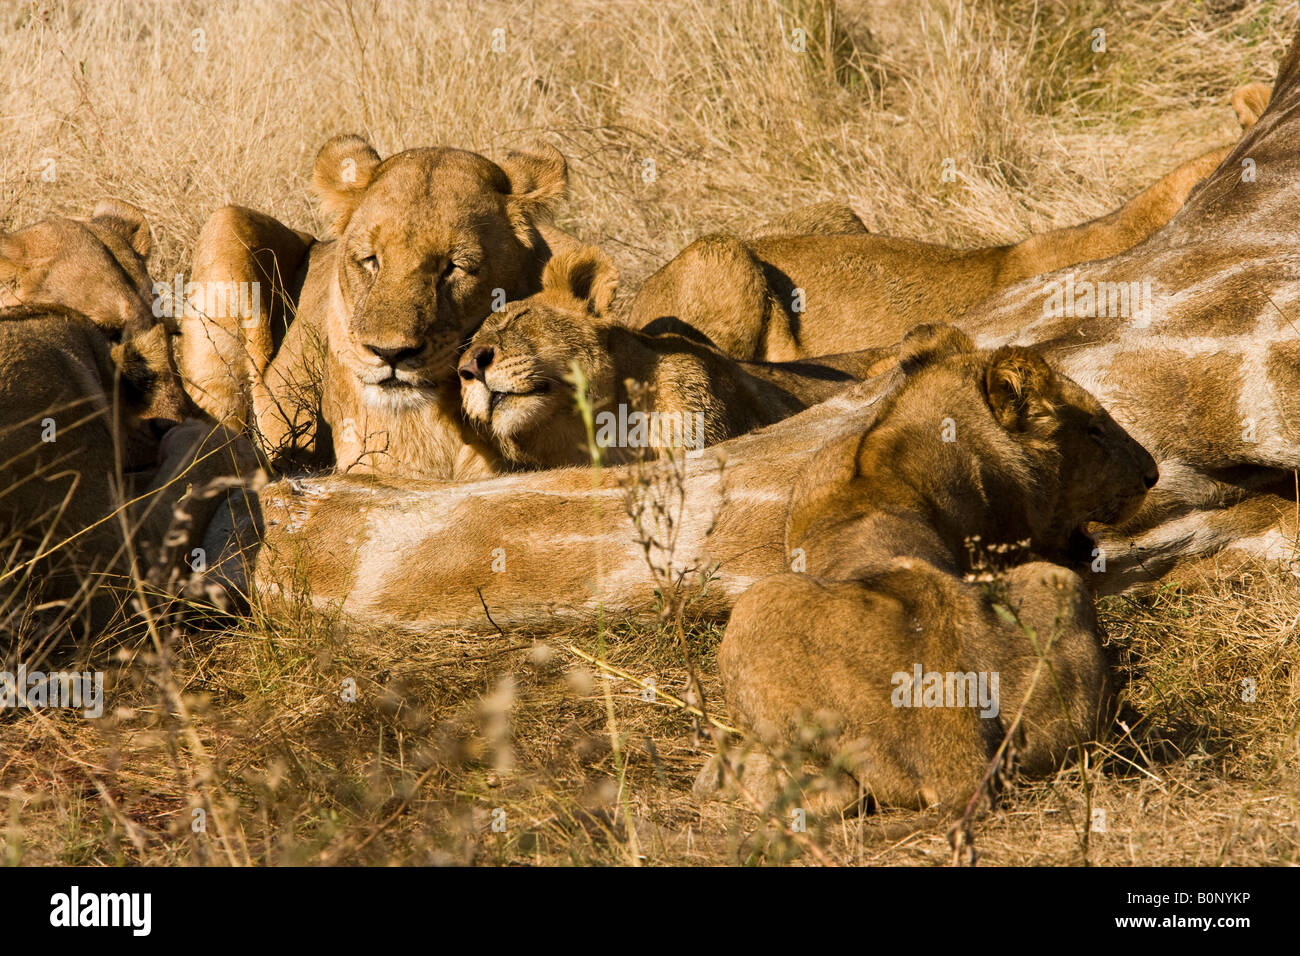 Lion cub Panthera Leo affectionately rubs head on adult female lion lying beside carcass of giraffe recently killed - Stock Image